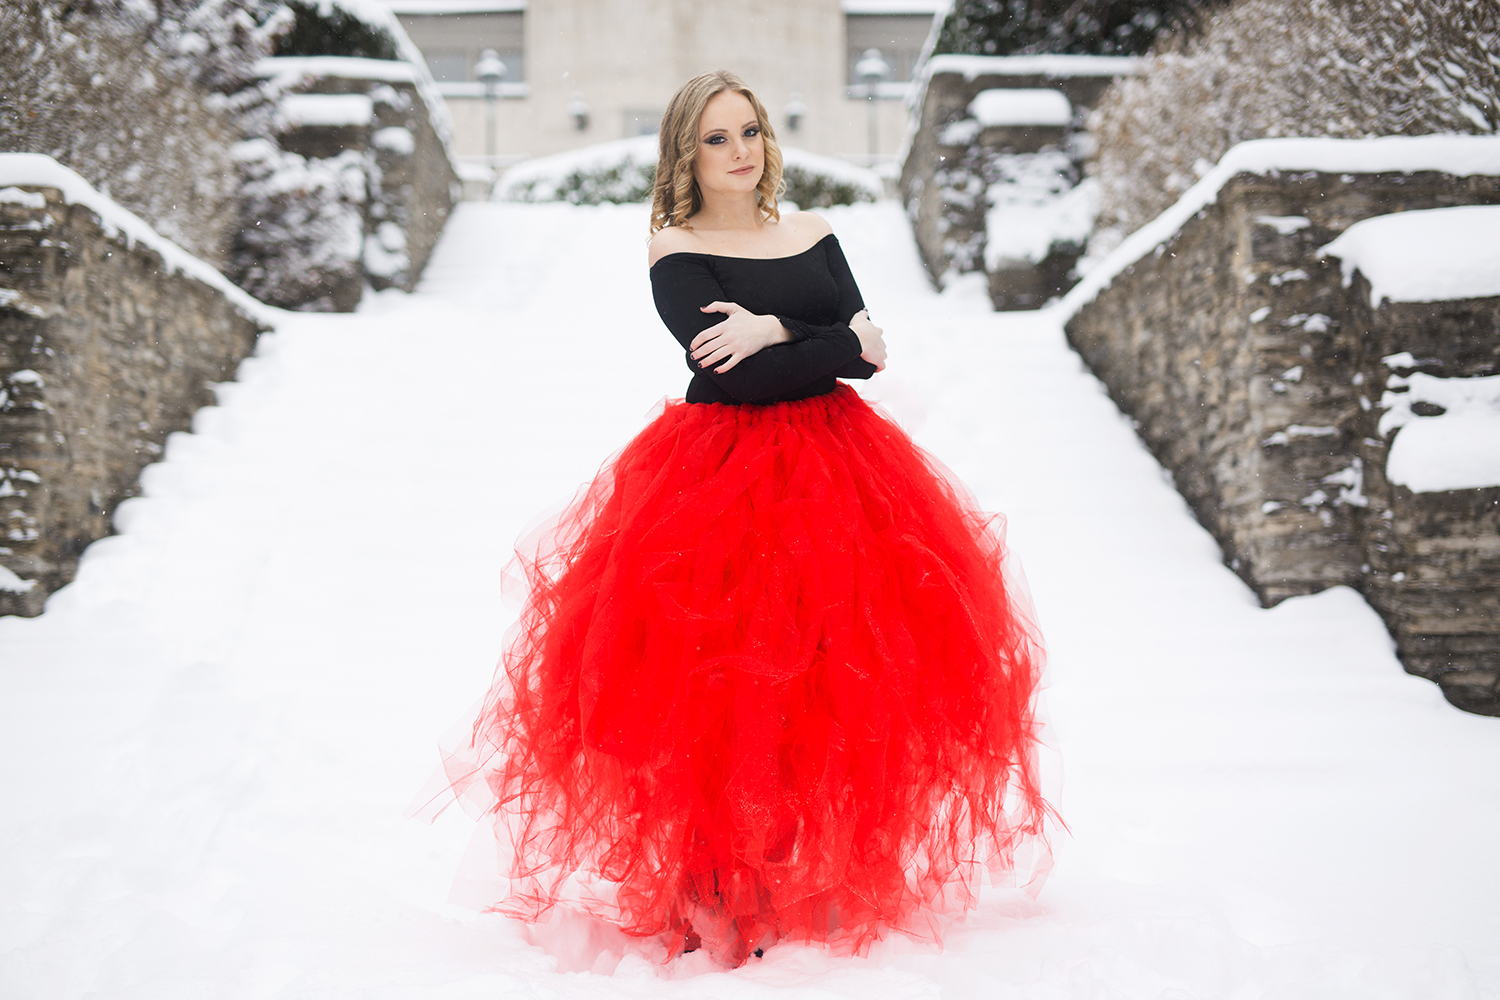 Anna posing in a red tulle skirt in the snow.